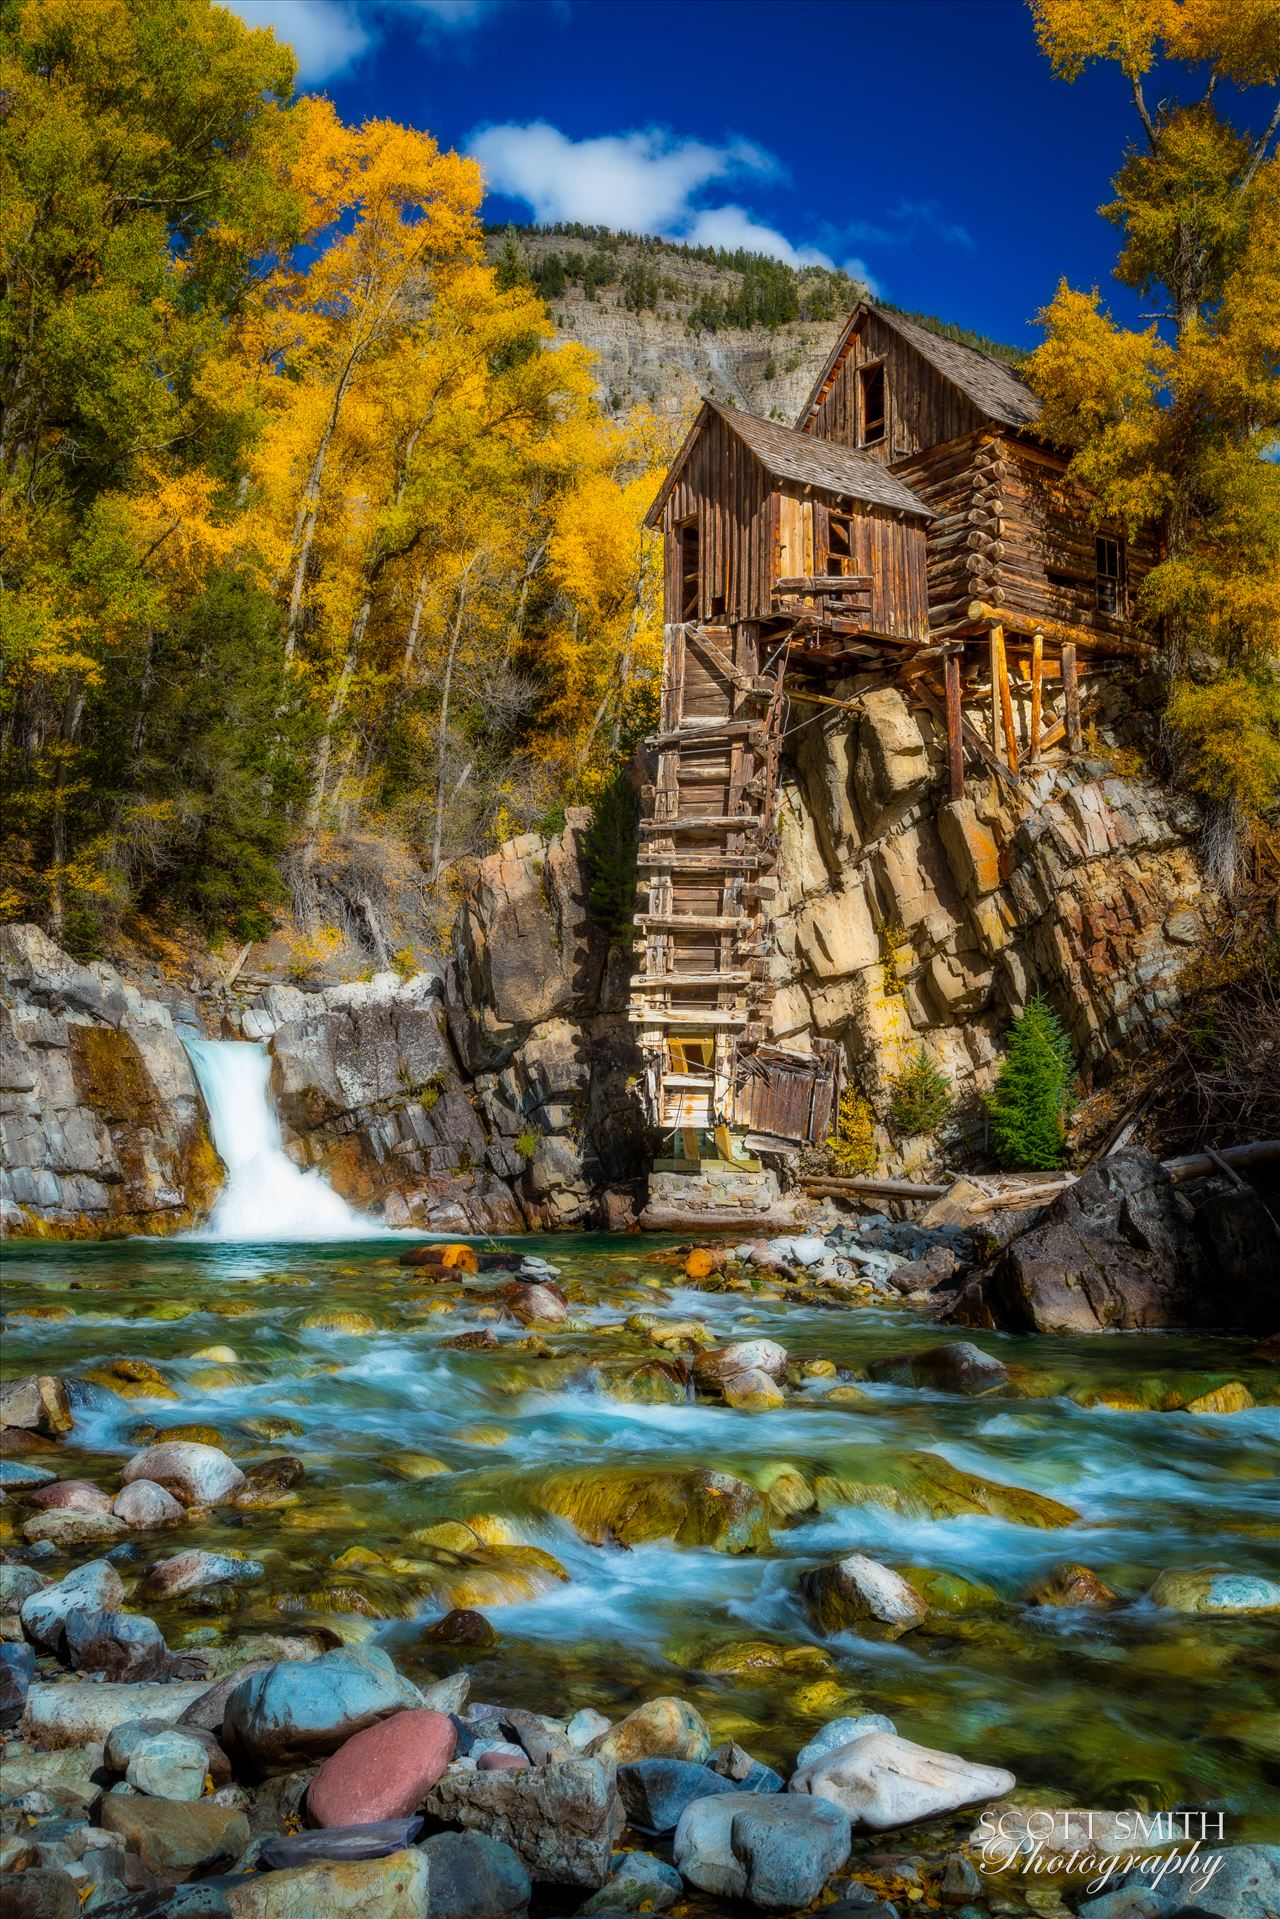 Crystal Mill, Colorado 11 - The Crystal Mill, or the Old Mill is an 1892 wooden powerhouse located on an outcrop above the Crystal River in Crystal, Colorado by D Scott Smith